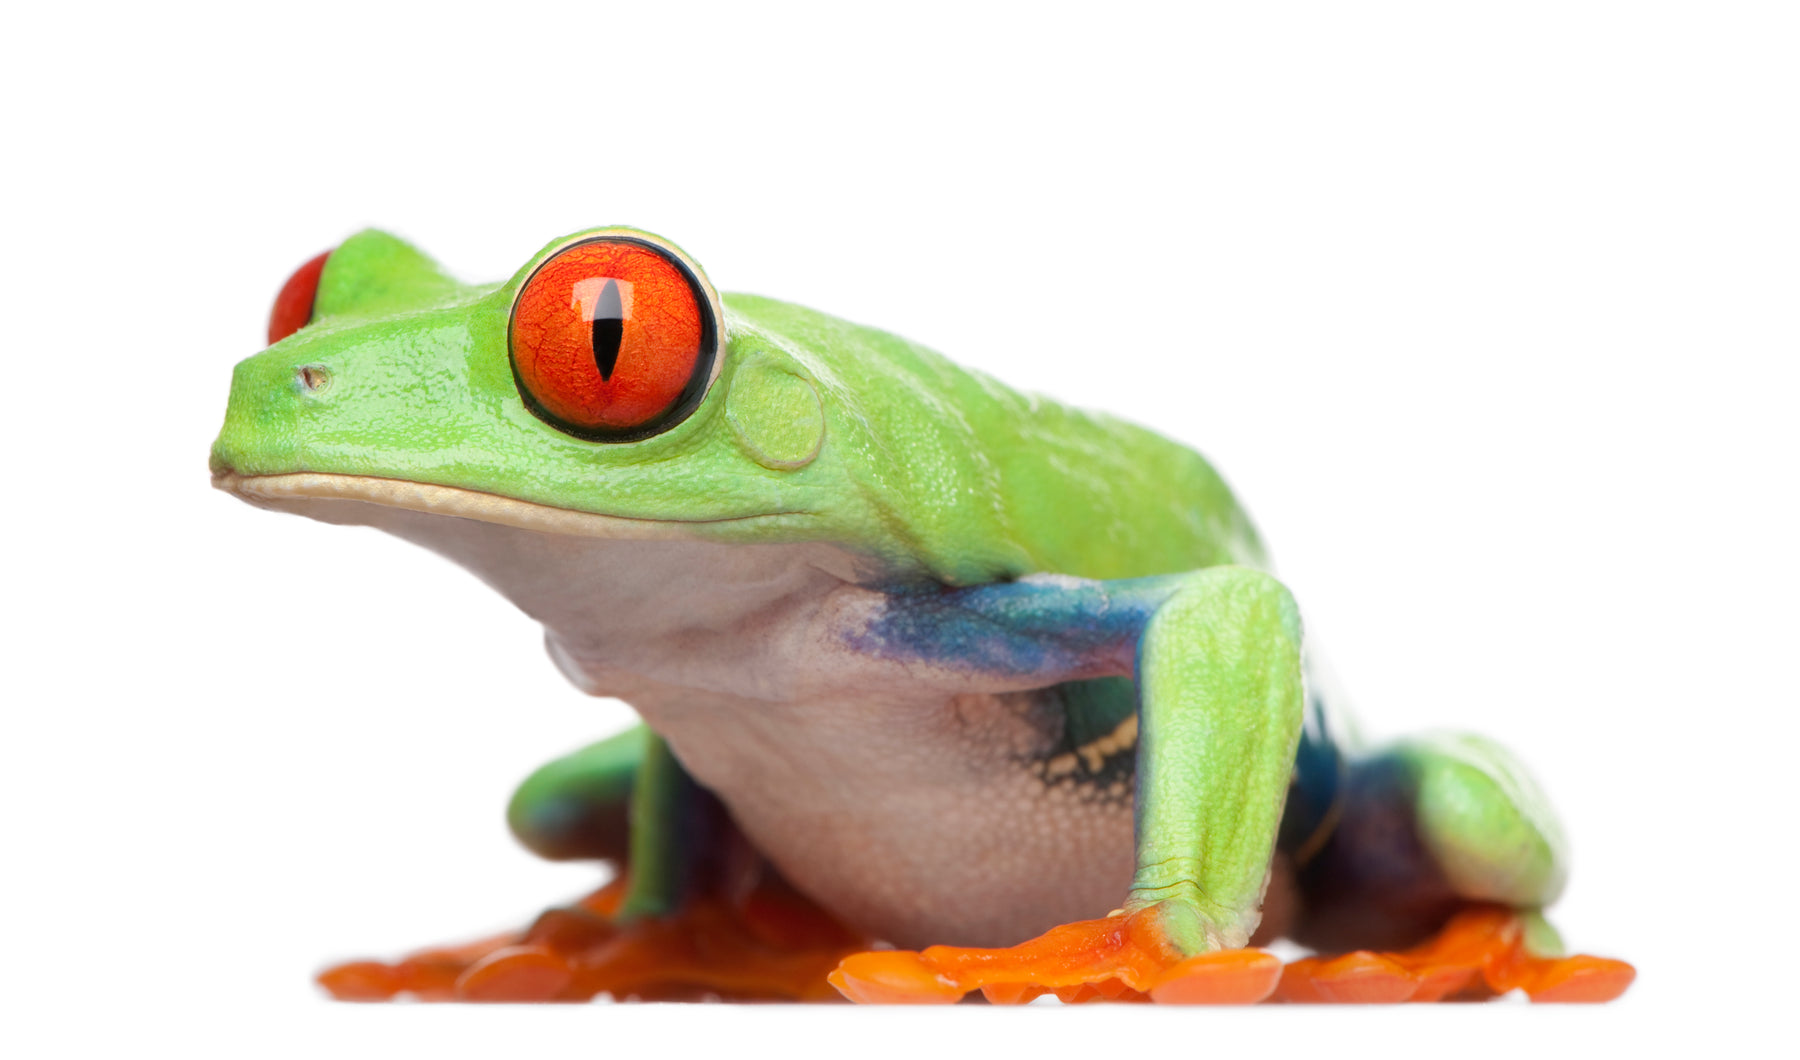 How to Care for Your Red-Eyed Tree Frog